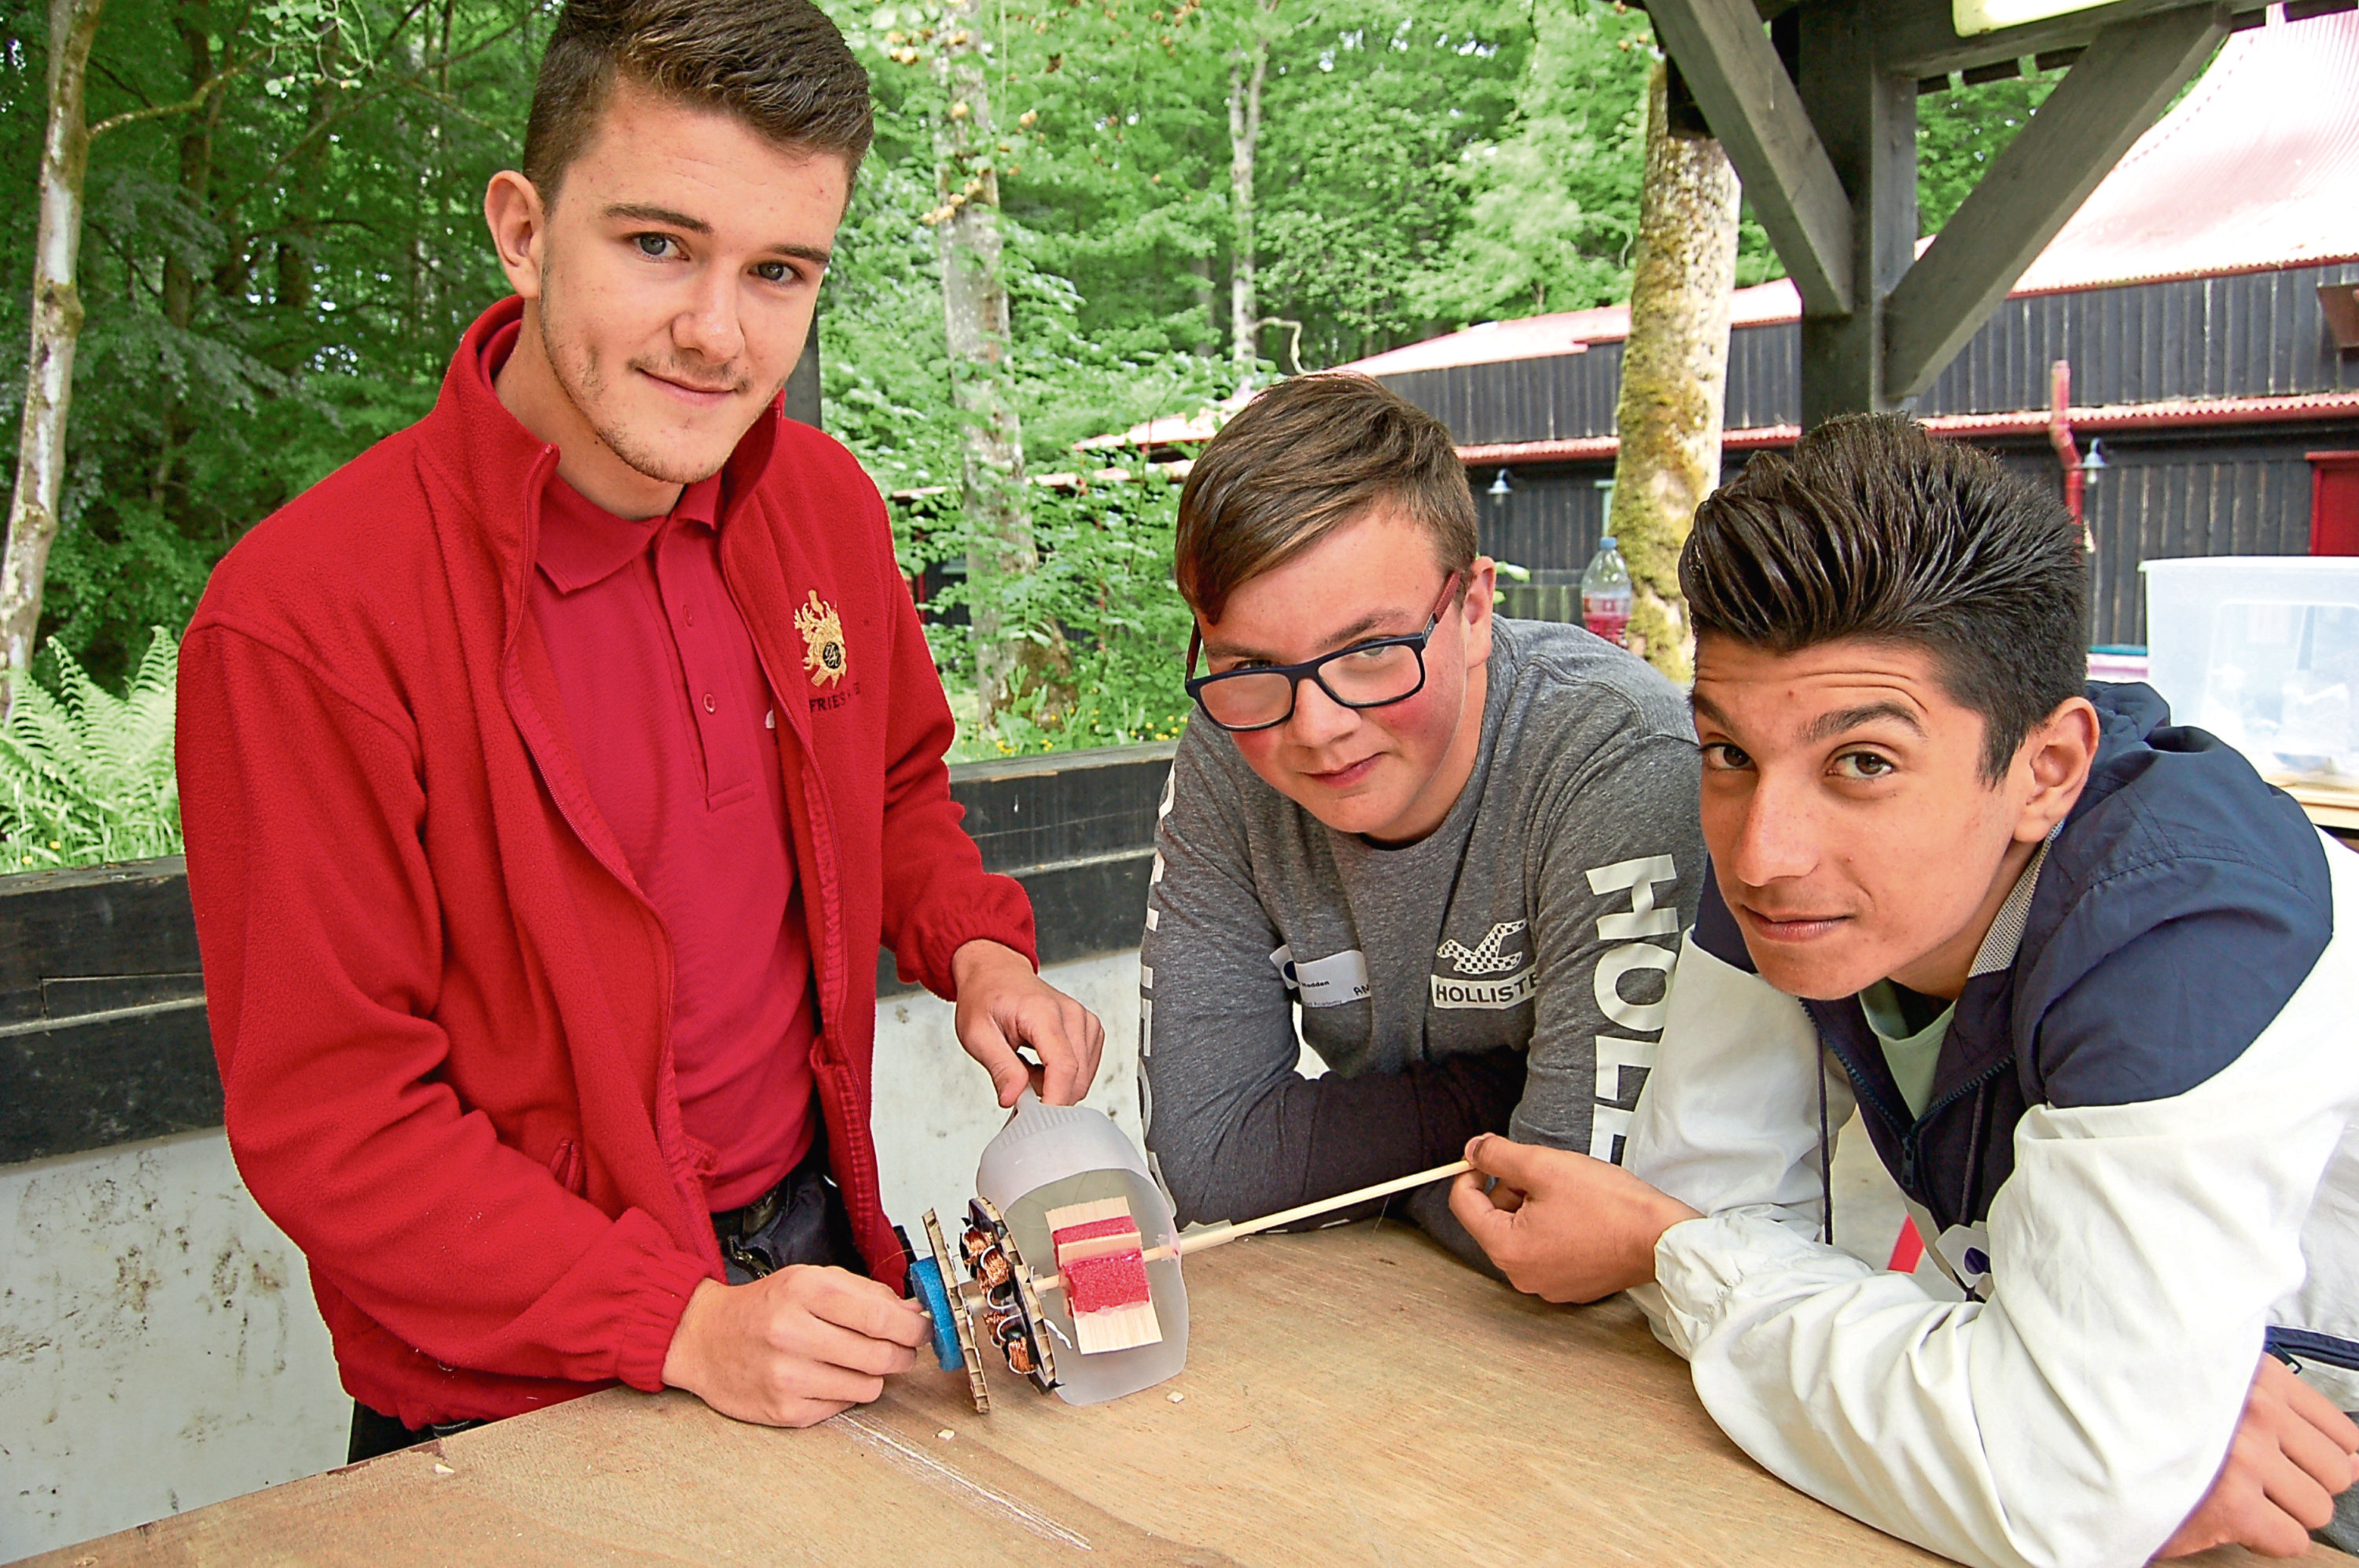 Hazlehead Academy pupils Kieran Hadden, 15, and Hadi Hamada, 16, took part in the Environment Day with the Prince's Trust